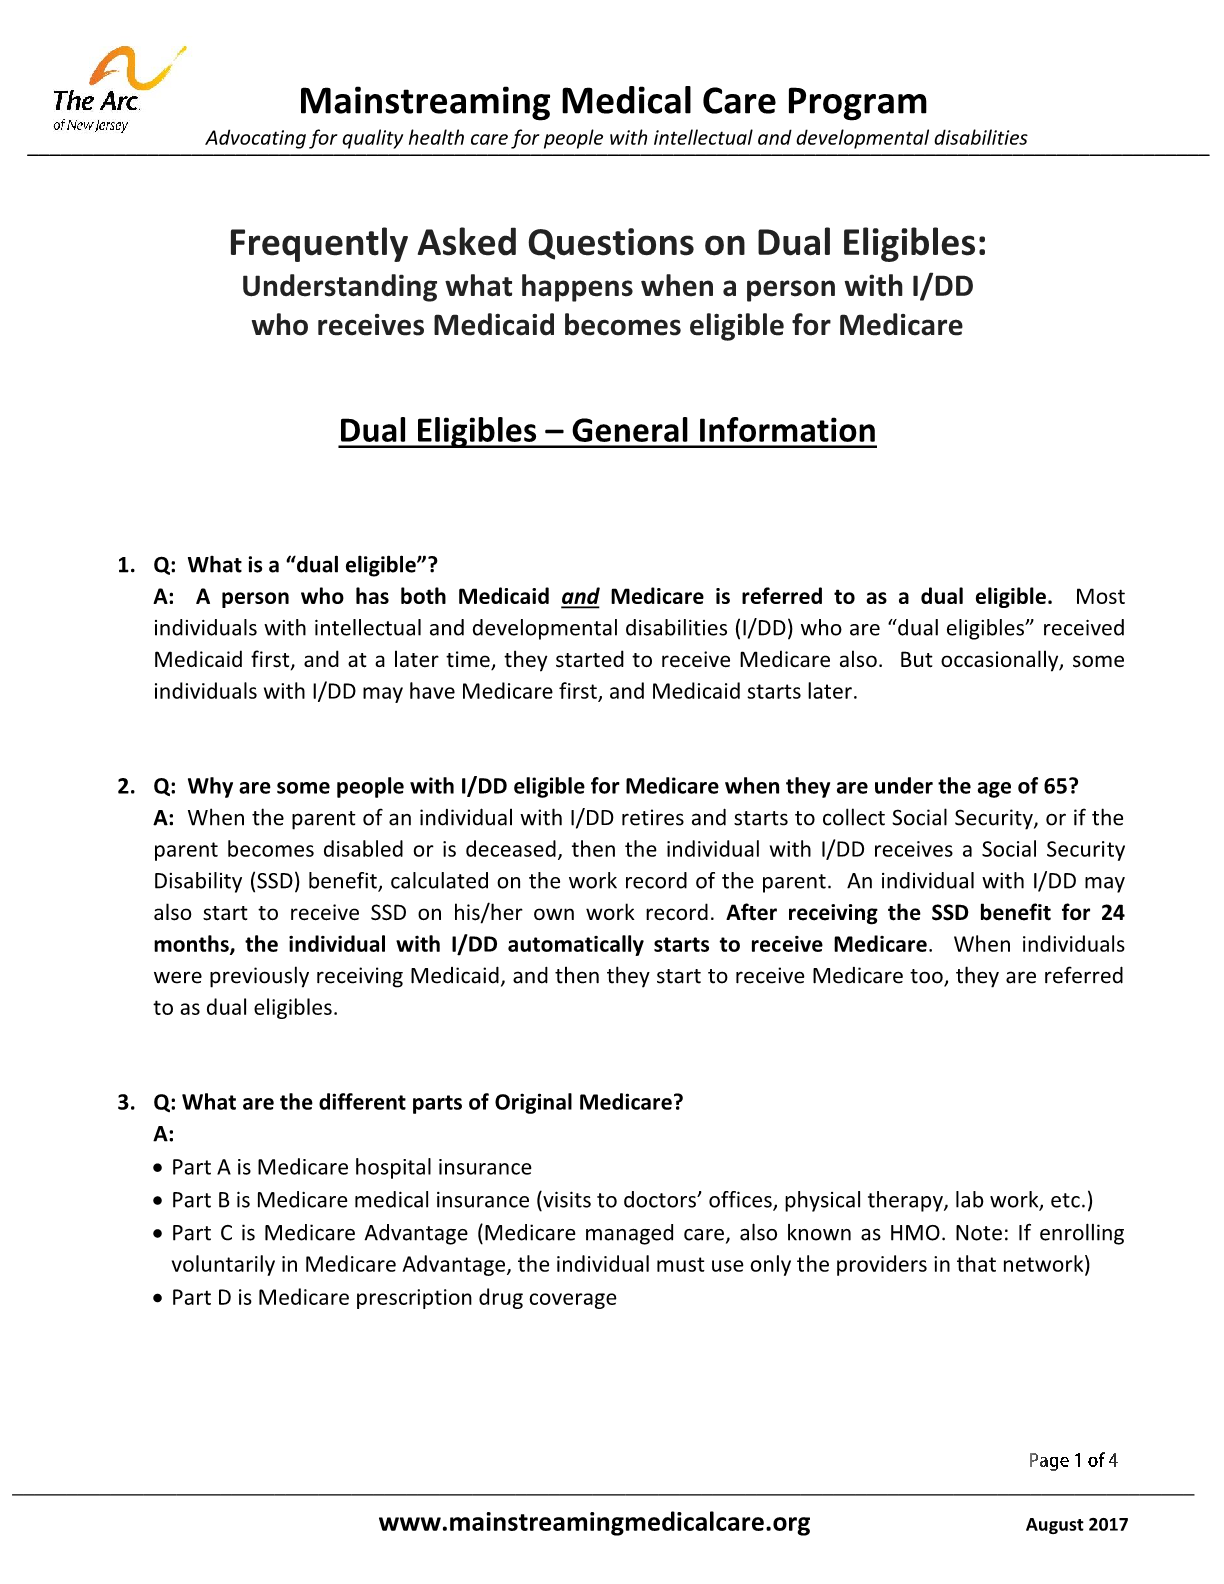 FAQ on Dual Eligibles: Understanding what happens when a person with I/DD who receives Medicaid becomes eligible for Medicare - General Information